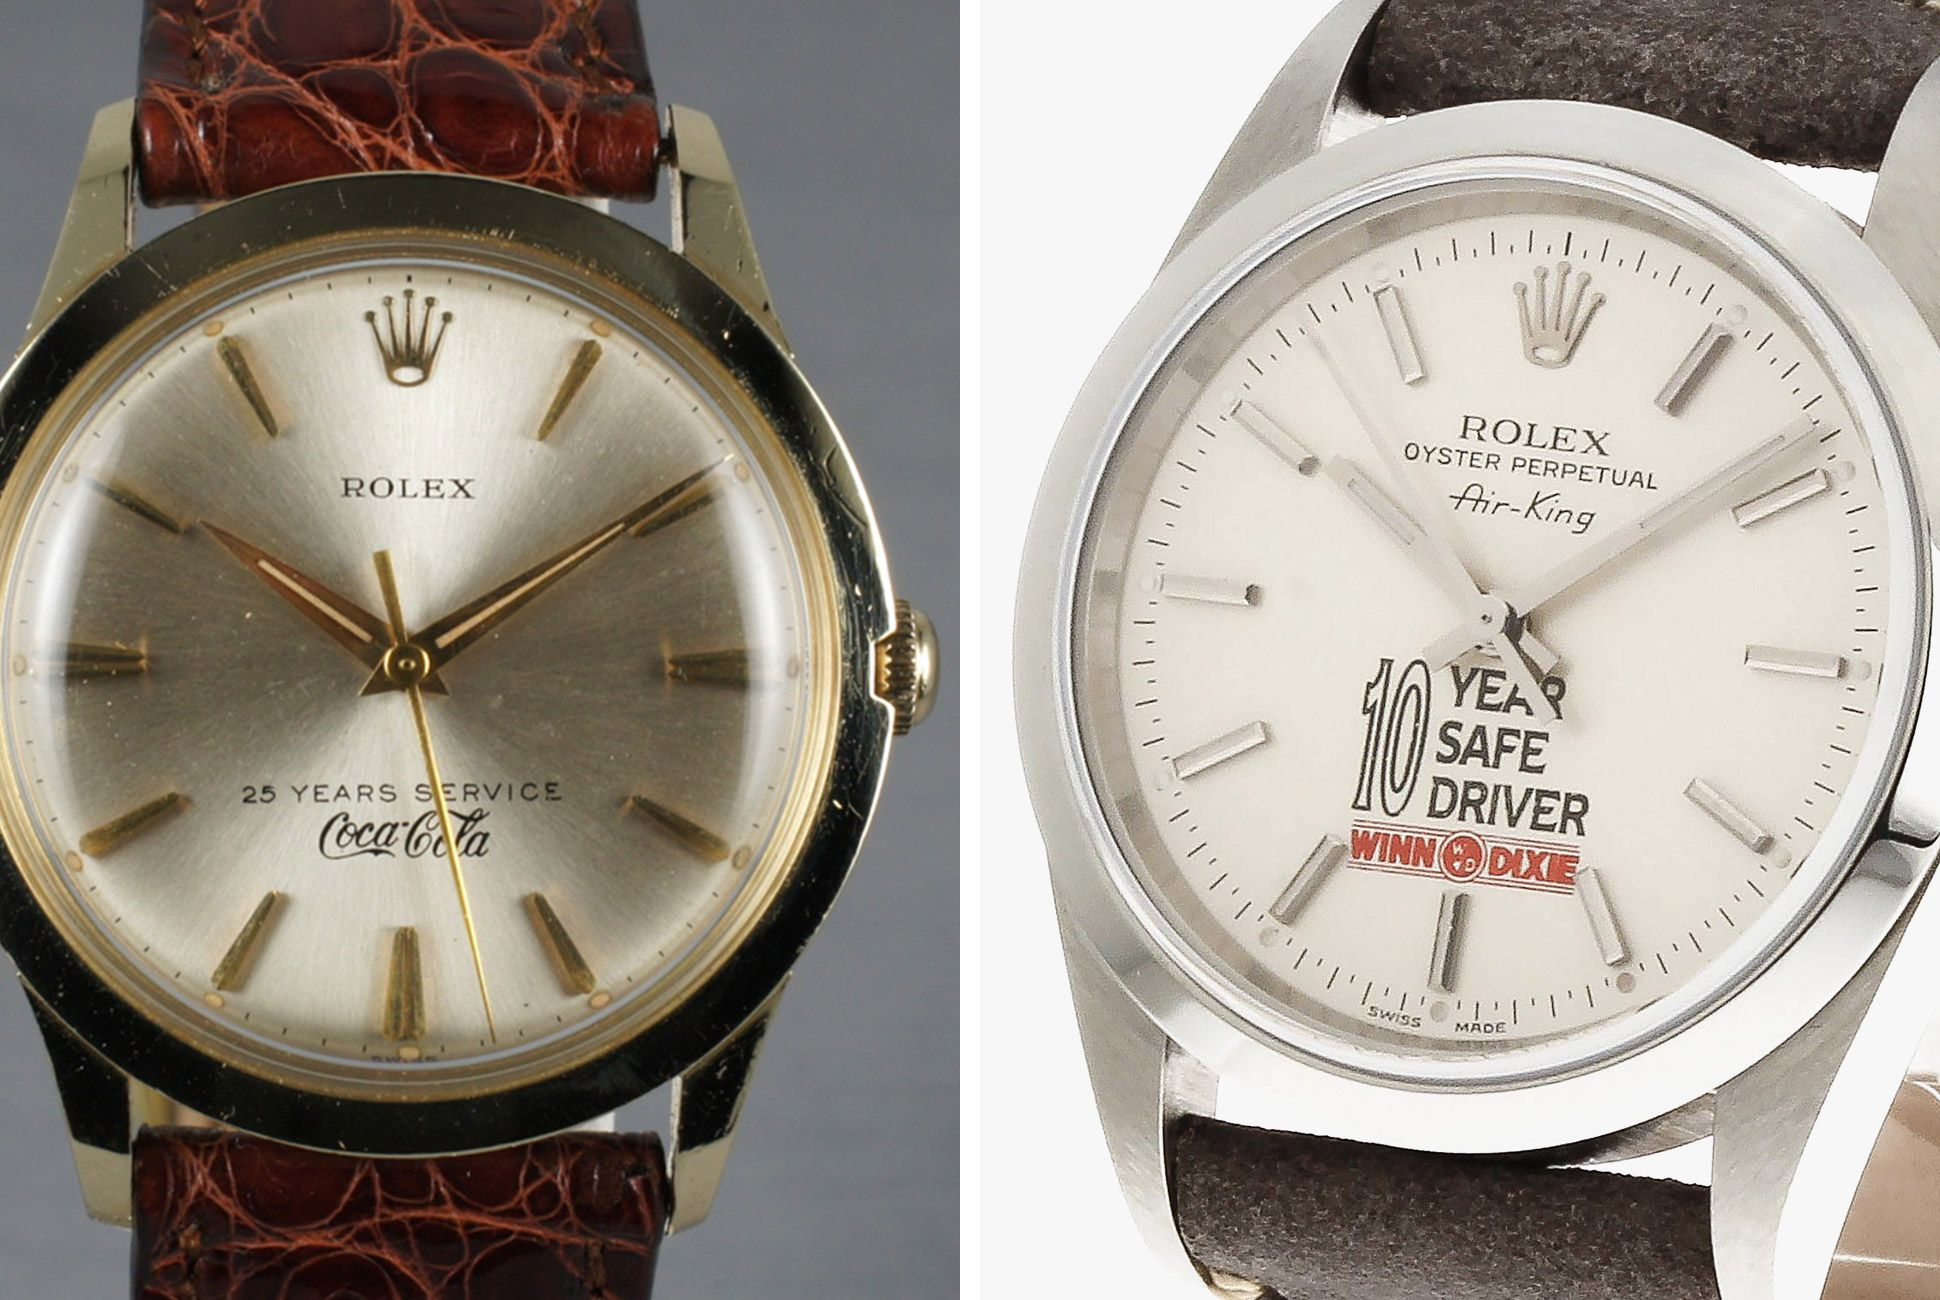 Other exercises in horological employee rewards? The Coca-Cola and Winn-Dixie dials.